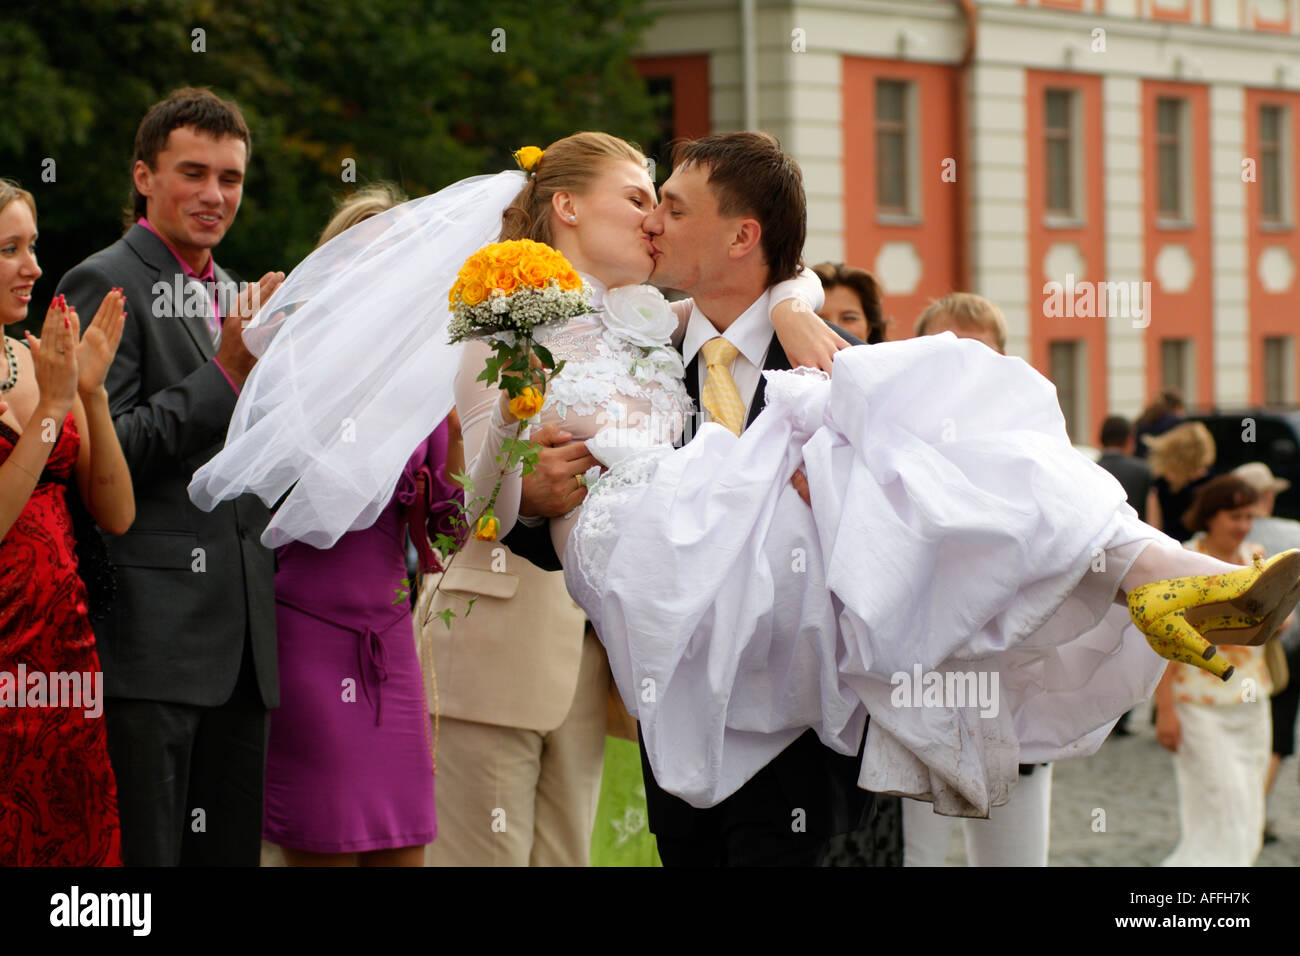 Matrimonio In Russia : A legally married couple in russia dmitry kozhukhov right and